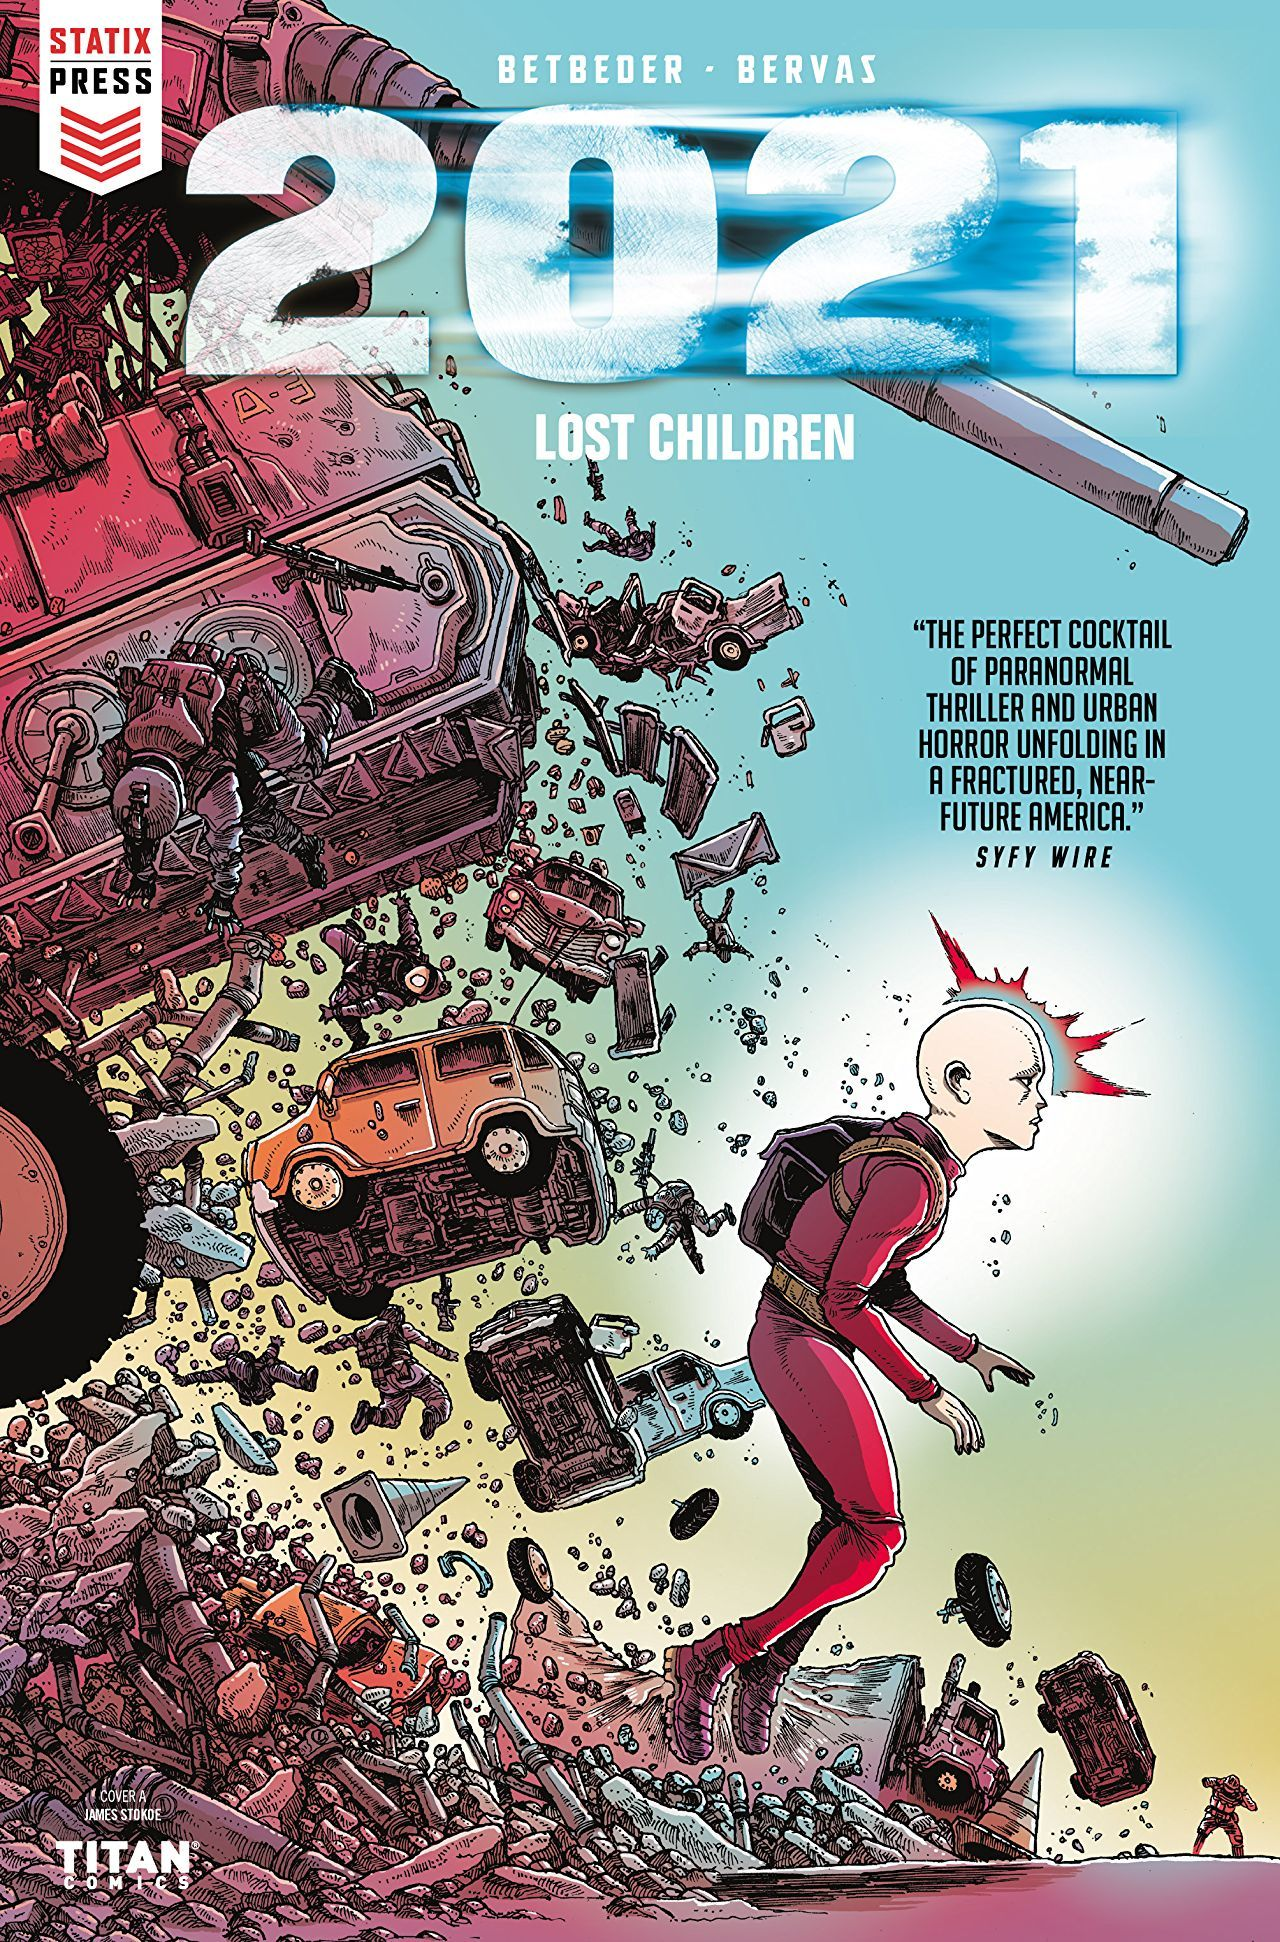 2021: Lost Children cover by James Stokoe